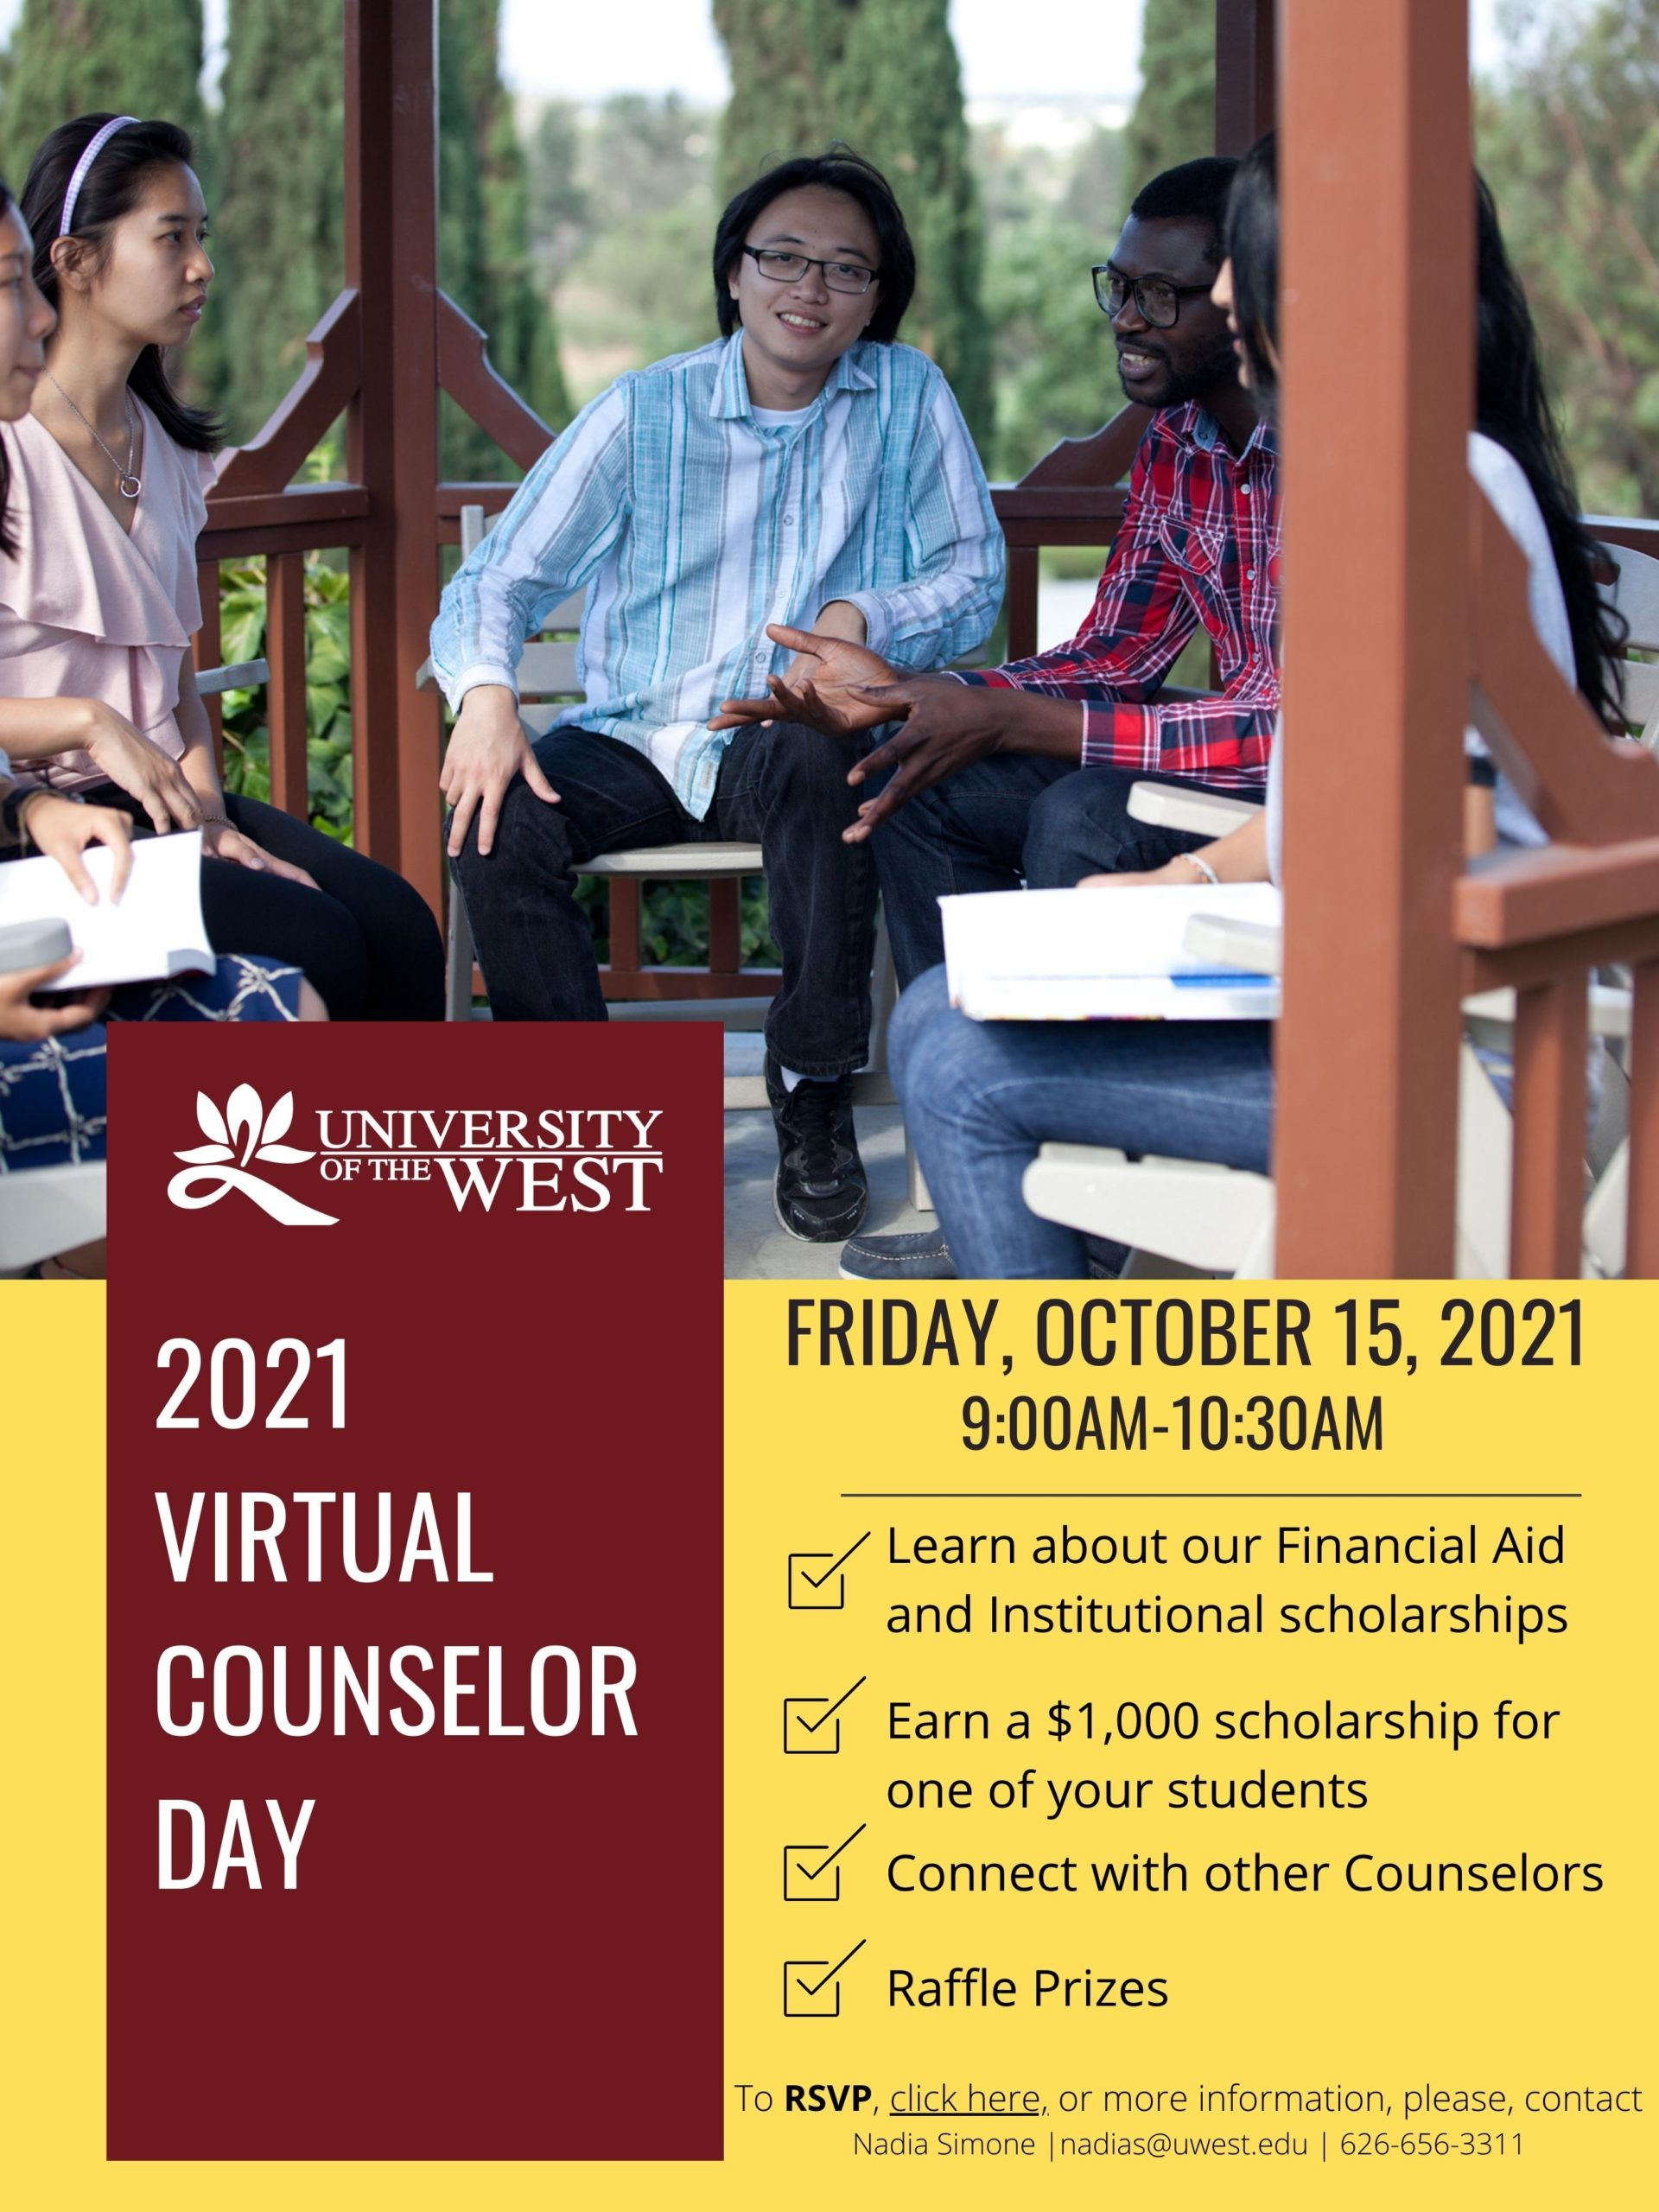 Counselor Day 2021 flyer